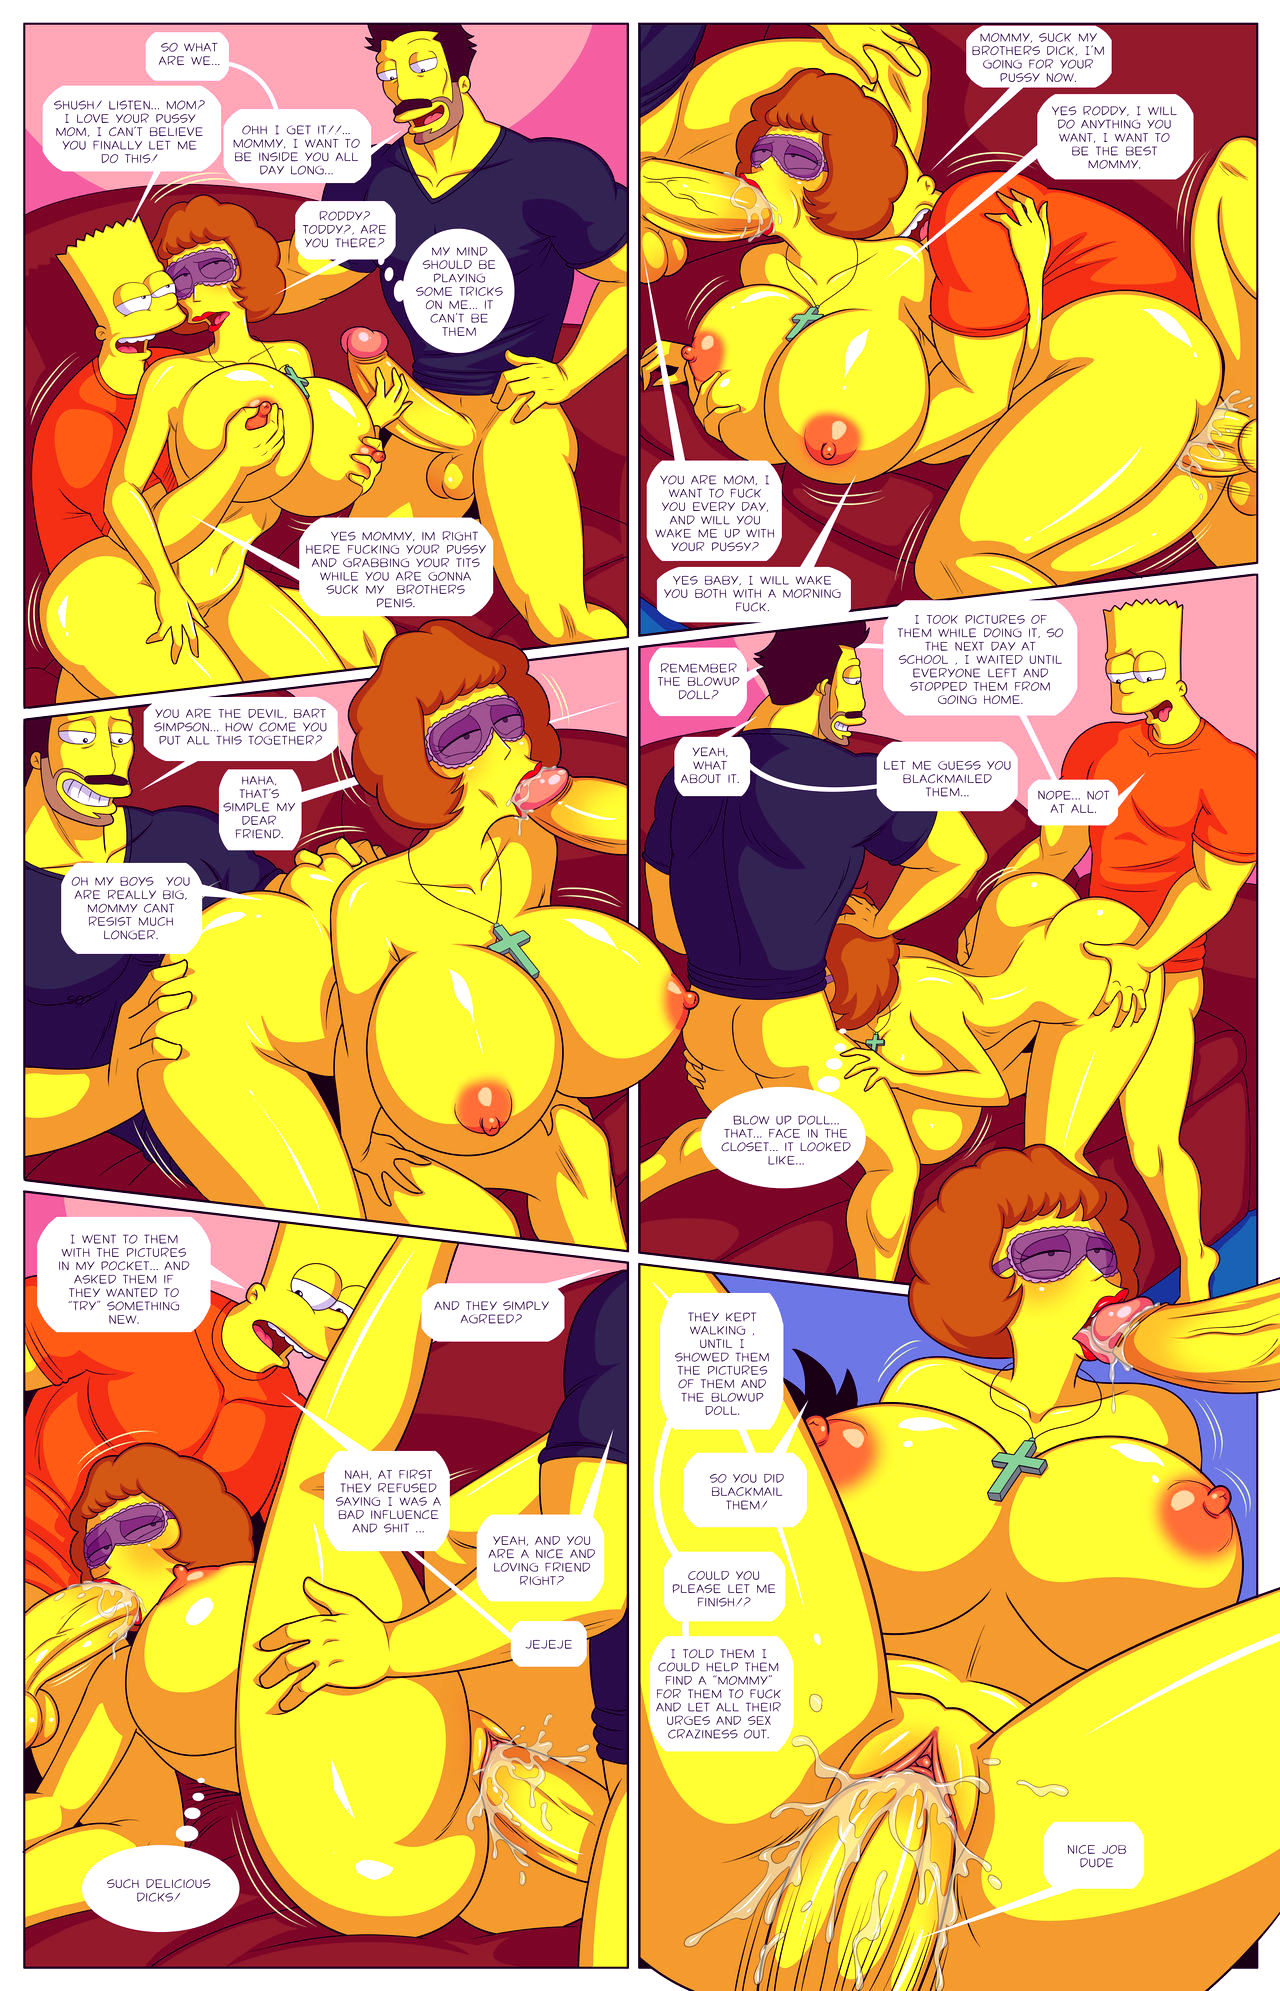 Darrens adventure or welcome to springfield porn comic picture 37